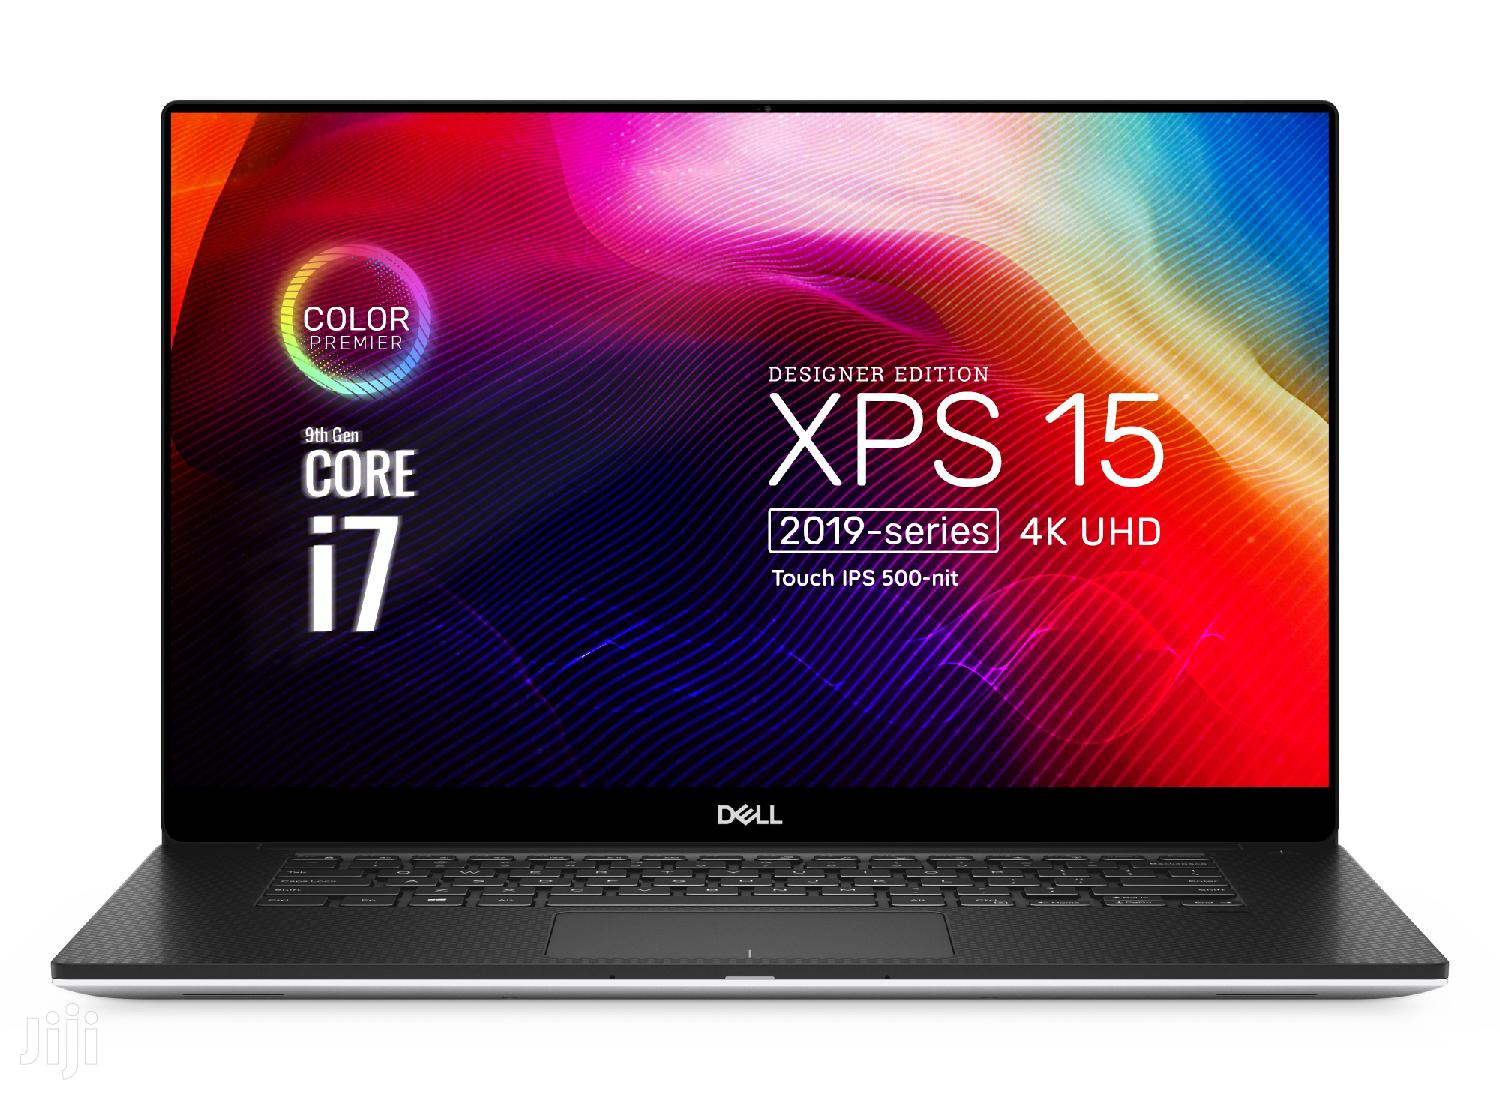 New Laptop Dell XPS 15 16GB Intel Core i7 SSD 512GB | Laptops & Computers for sale in Kokomlemle, Greater Accra, Ghana